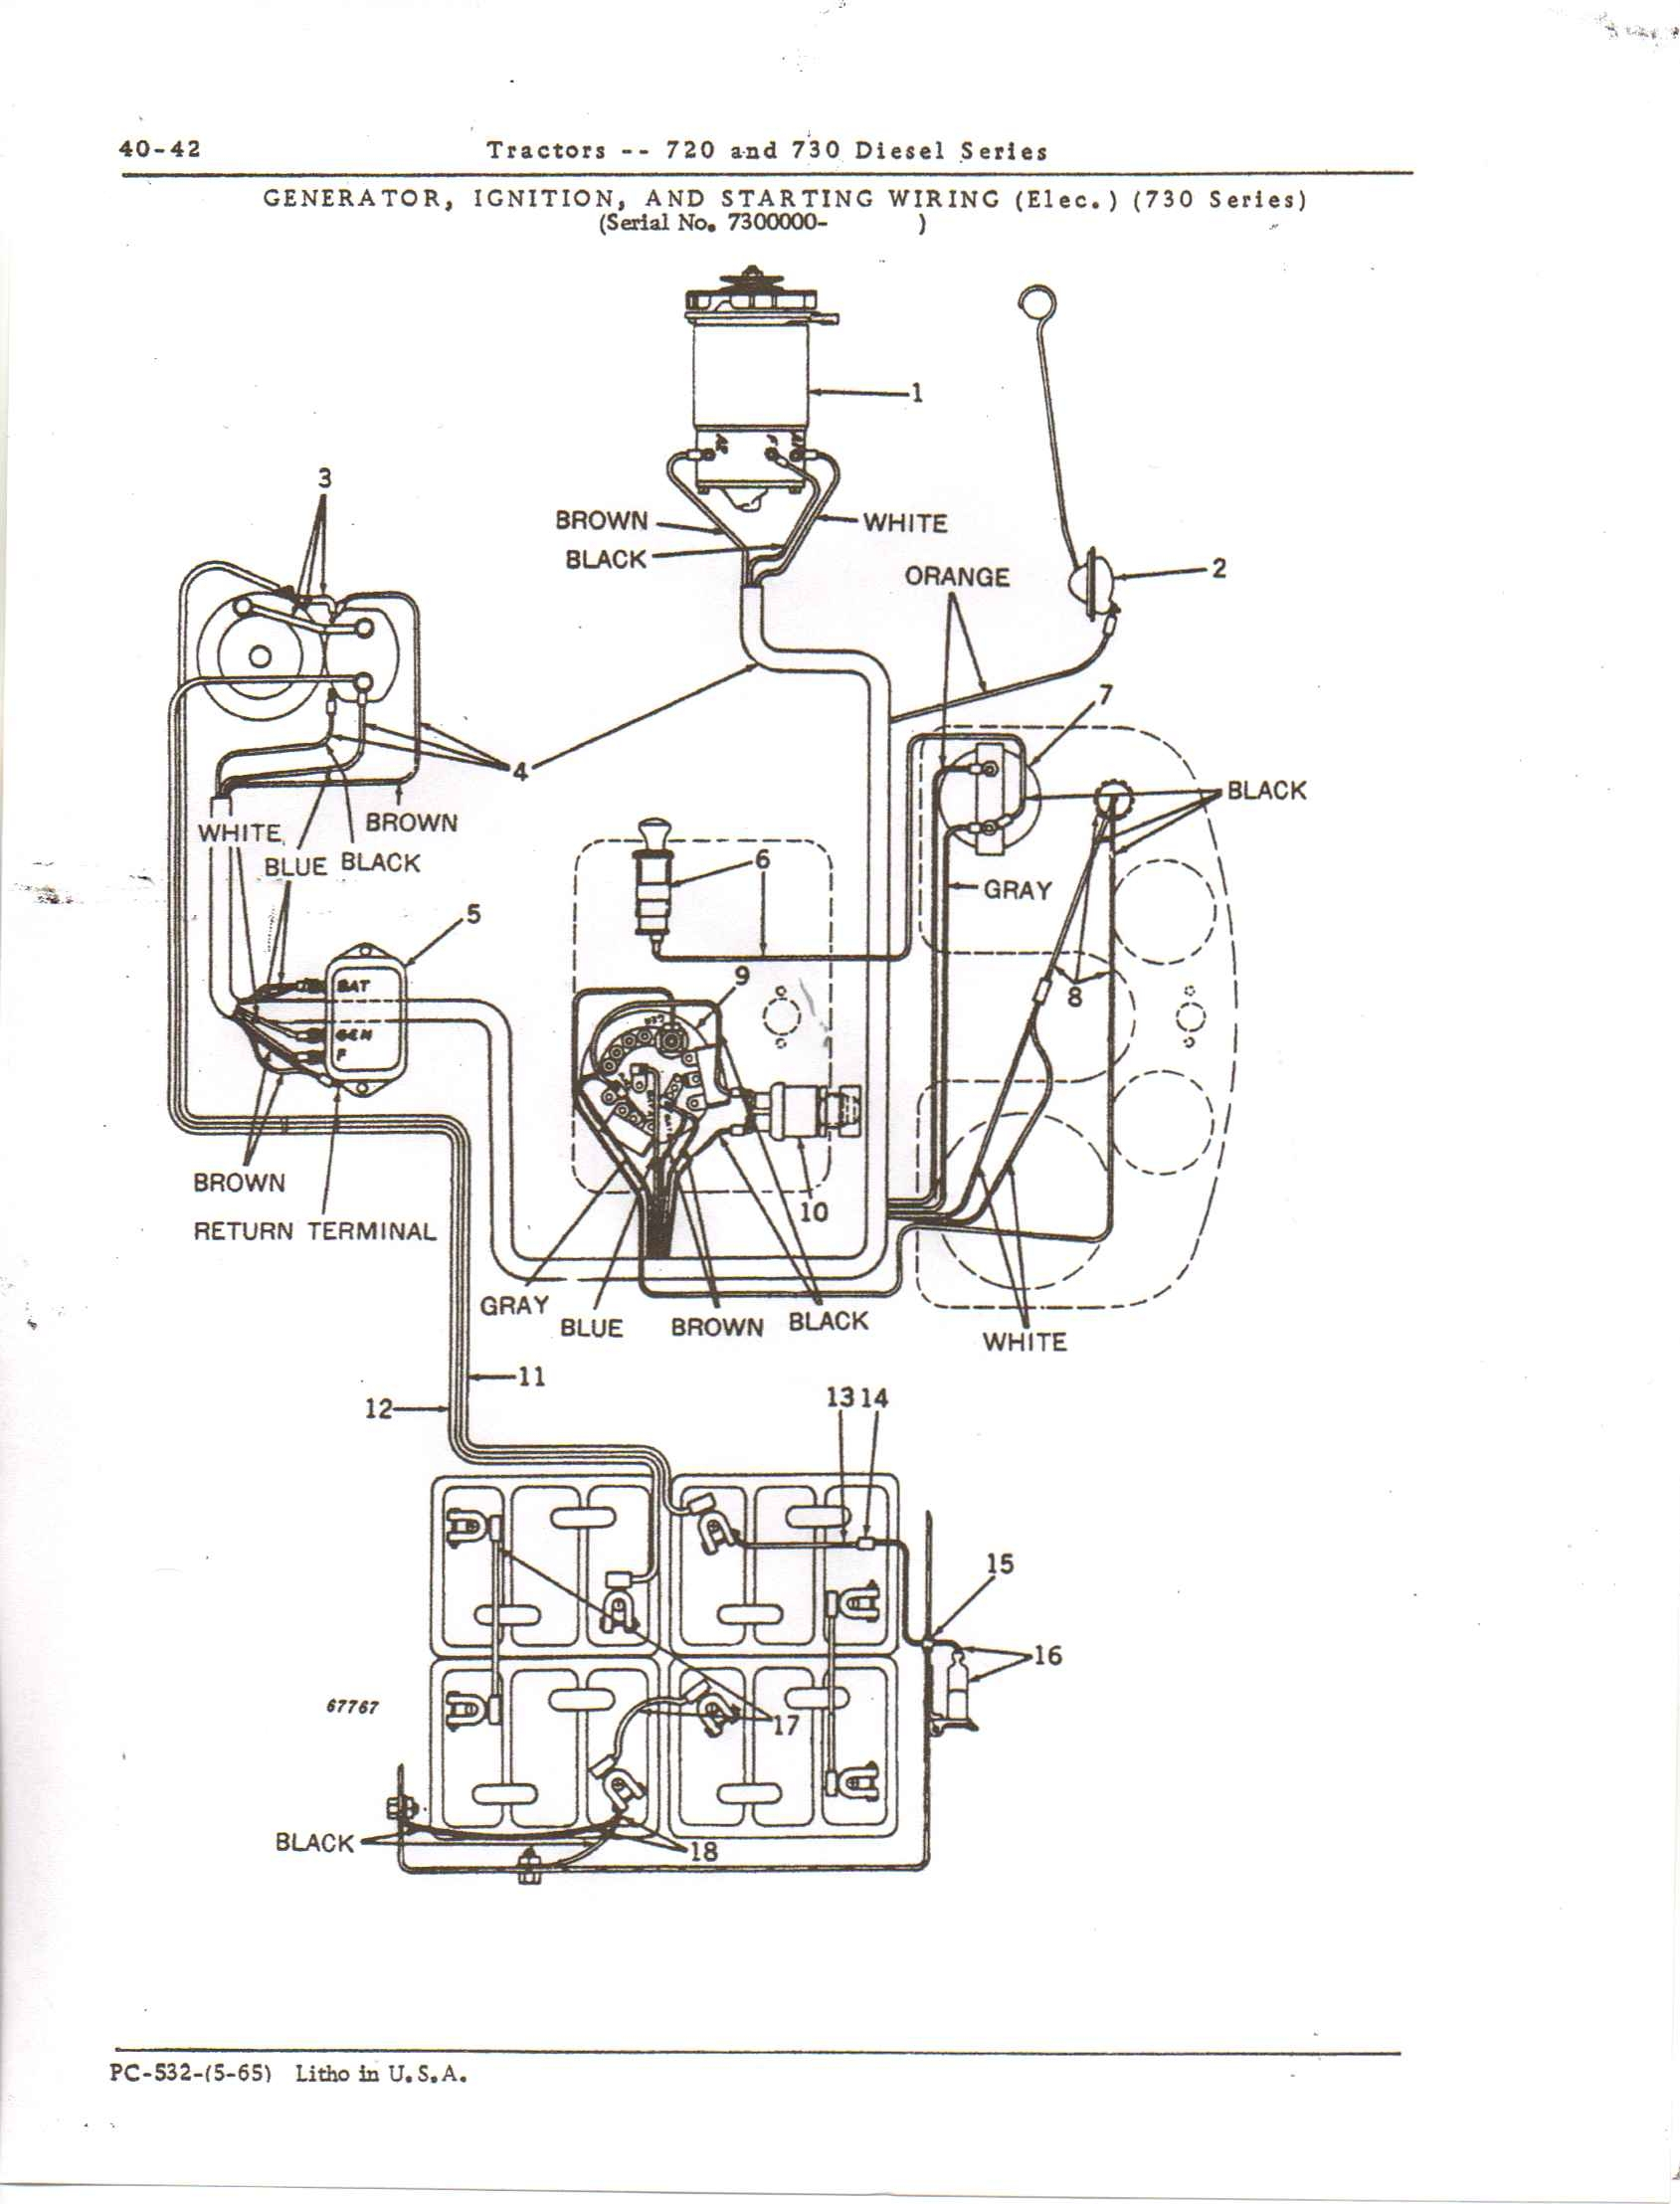 John Deere 108 Wiring Diagram - Go Wiring Diagram on john deere m wiring-diagram, john deere 180 wiring-diagram, john deere 455 wiring-diagram, john deere 155c wiring-diagram, john deere la120 wiring diagram, john deere x360 wiring diagram, john deere d170 wiring diagram, john deere ignition wiring diagram, john deere 145 wiring-diagram, john deere la140 wiring diagram, john deere lx279 wiring diagram, john deere x324 wiring diagram, john deere z830a wiring diagram, john deere z255 wiring diagram, john deere electrical diagrams, john deere mower wiring diagram, john deere x720 wiring diagram, john deere d140 wiring diagram, john deere la115 wiring diagram, john deere z445 wiring diagram,